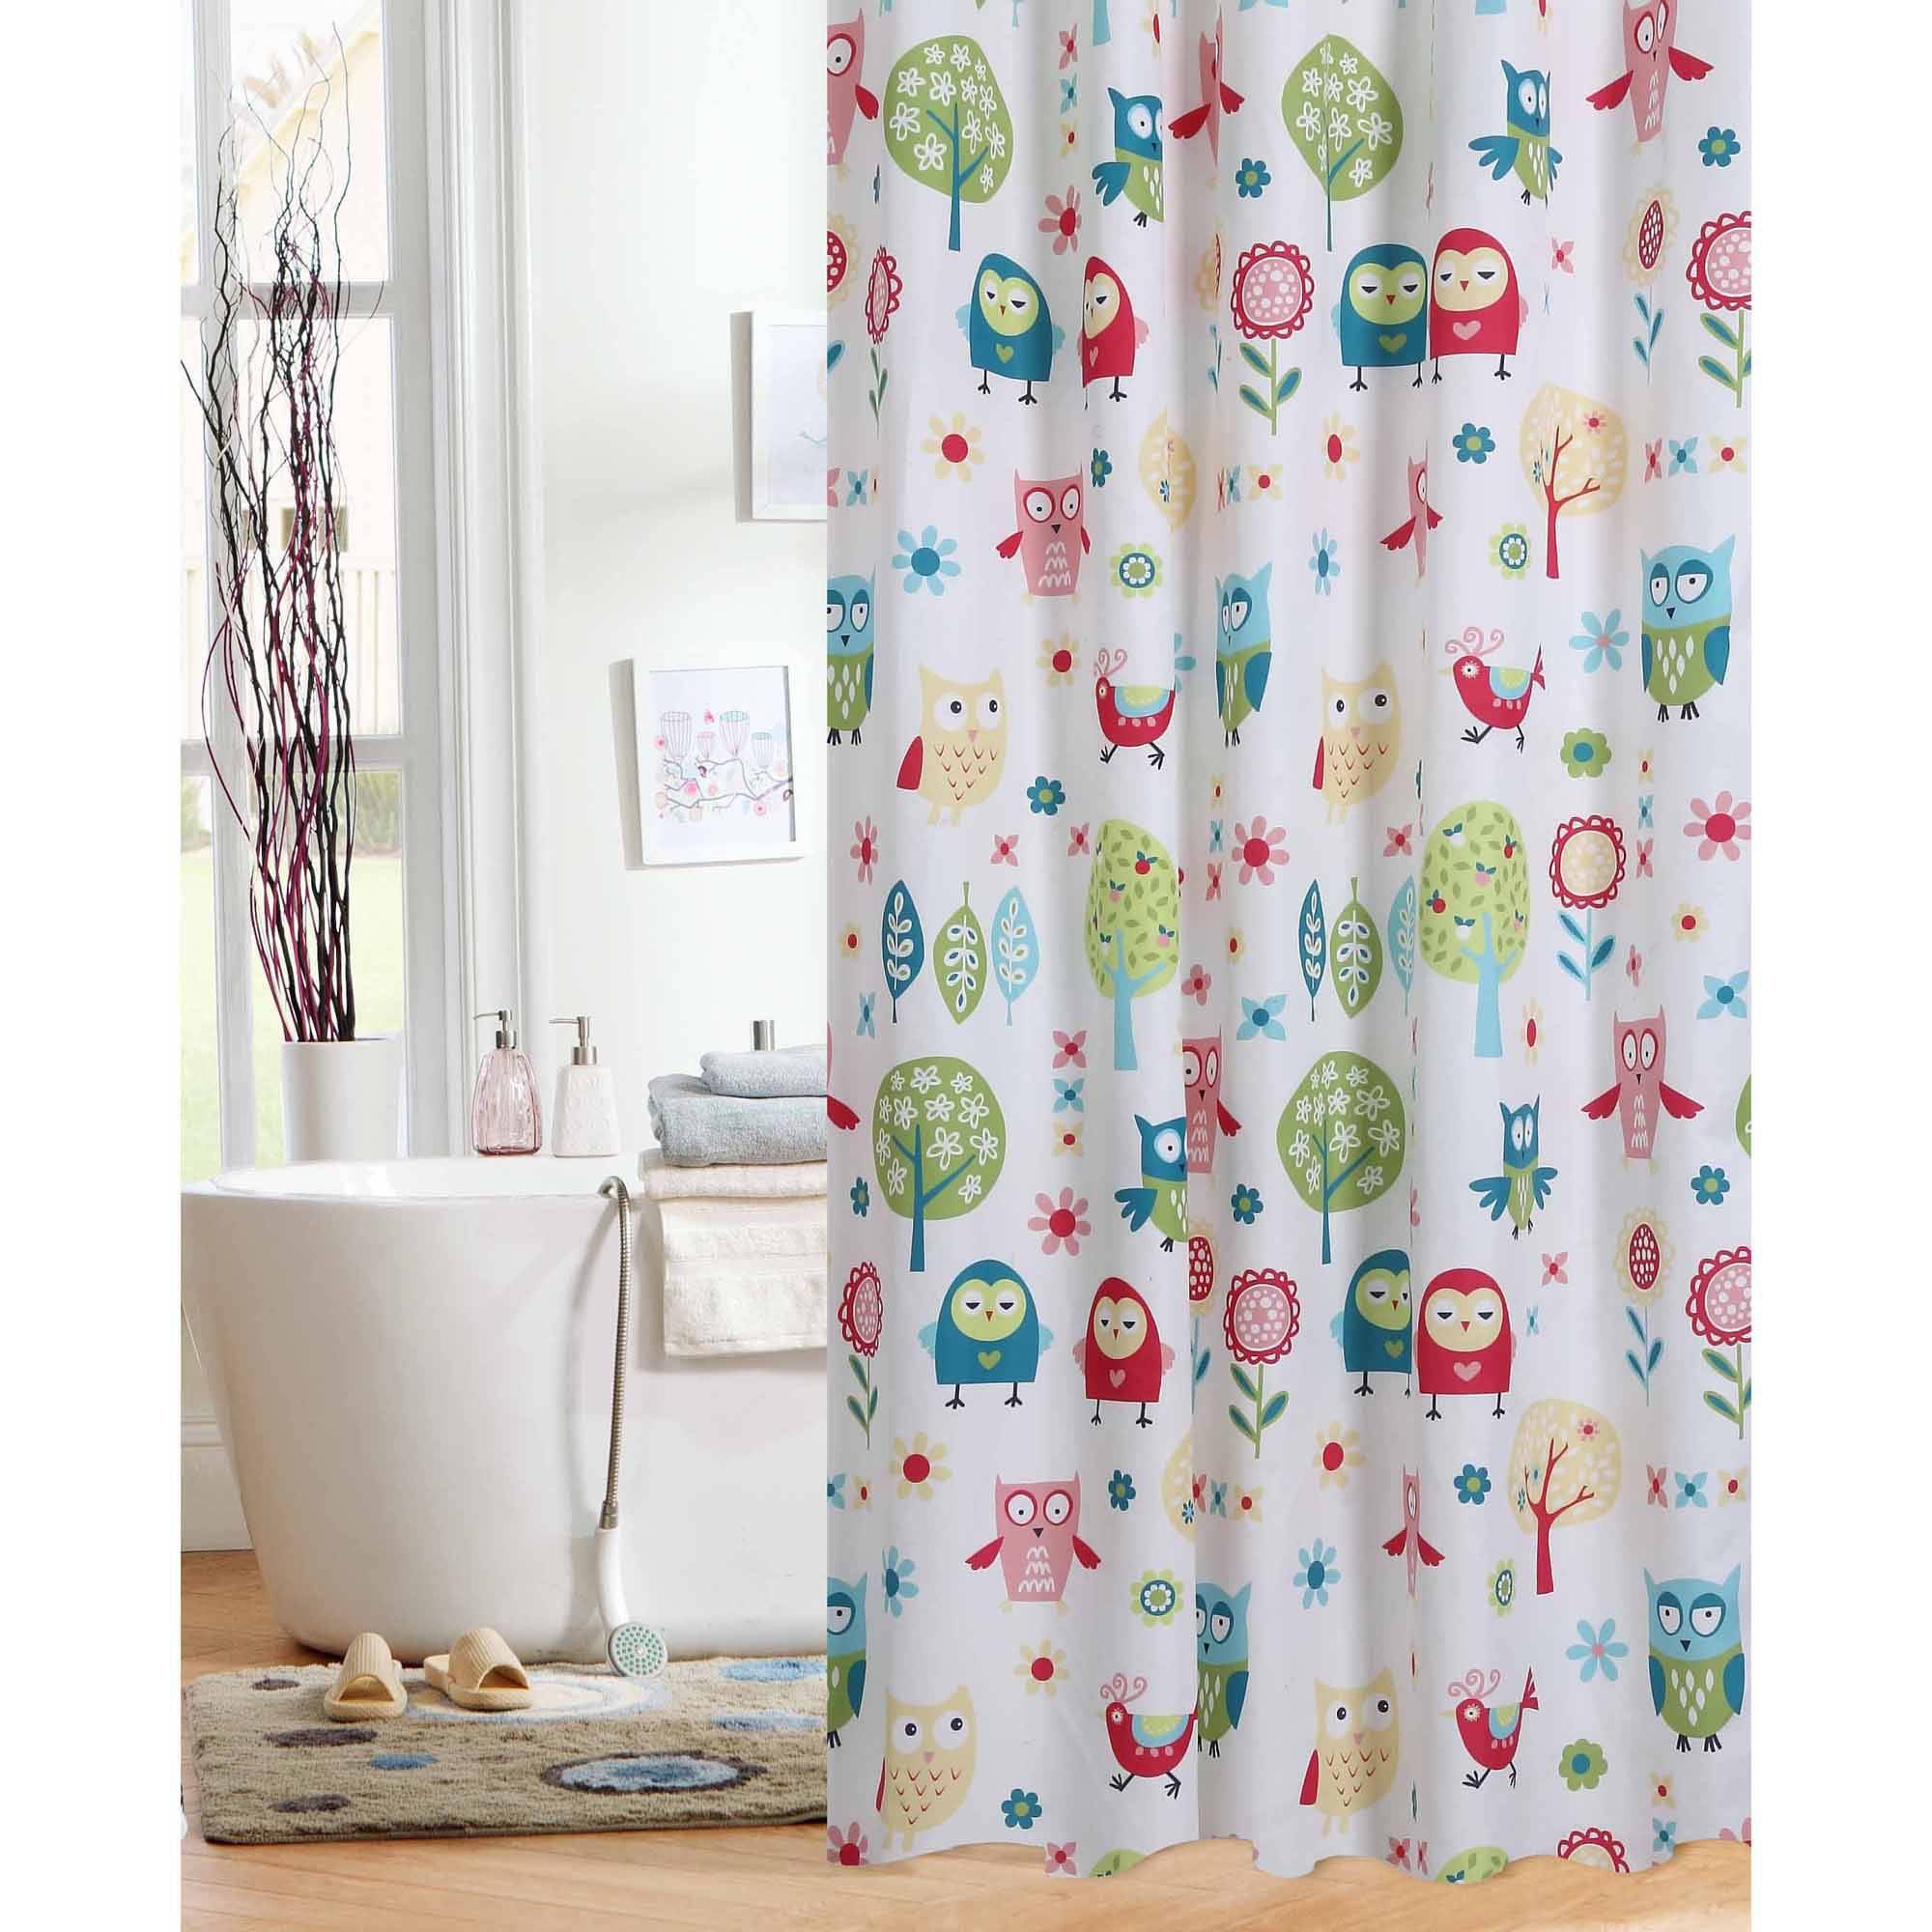 Mainstays Ogee Tile Fabric Shower Curtain With Hooks